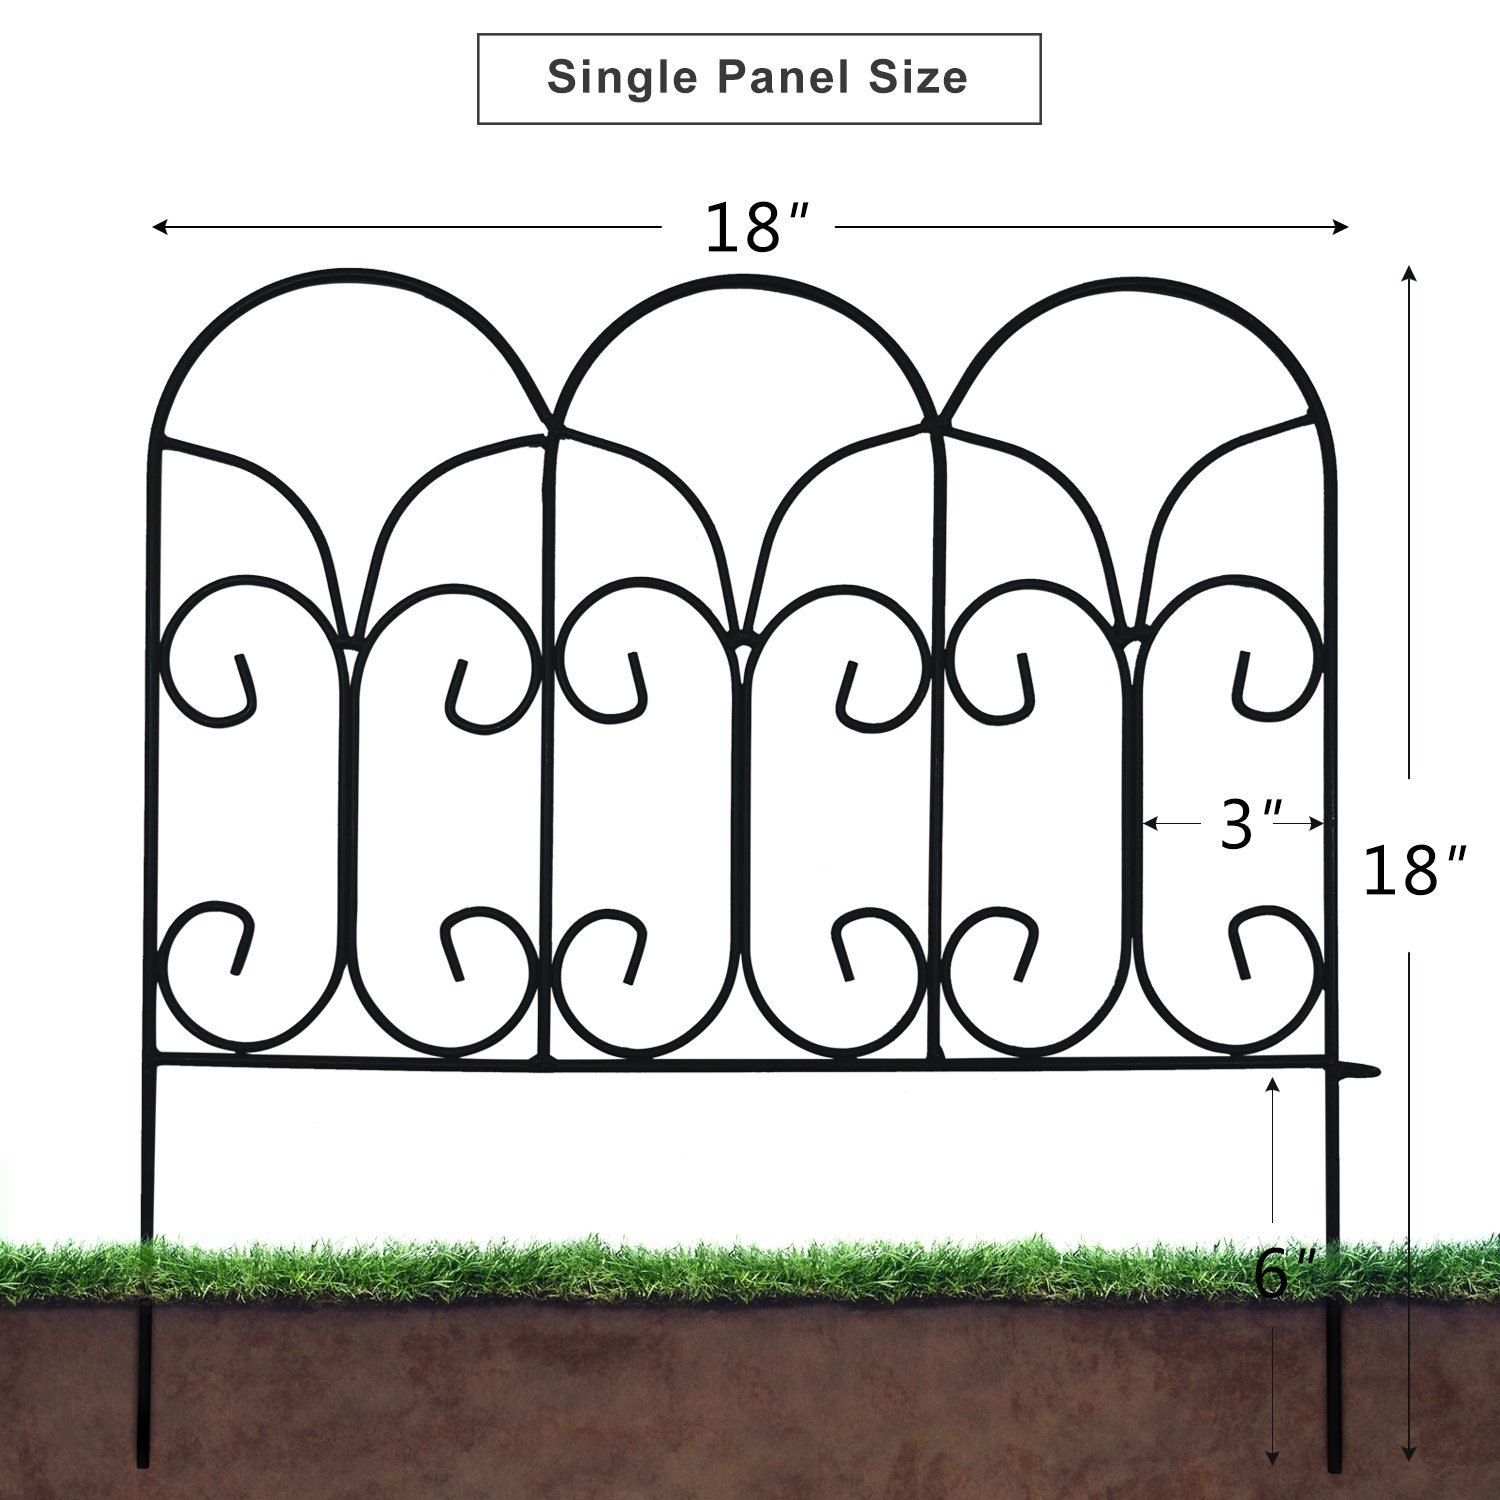 Amagabeli Decorative Garden Fence Coated Metal Outdoor Rustproof 18in x 7.5ft Landscape Wrought Iron Wire Border Fencing Folding Patio Fences Flower Bed Barrier Section Panel Decor Picket Edging Black by AMAGABELI GARDEN & HOME (Image #2)